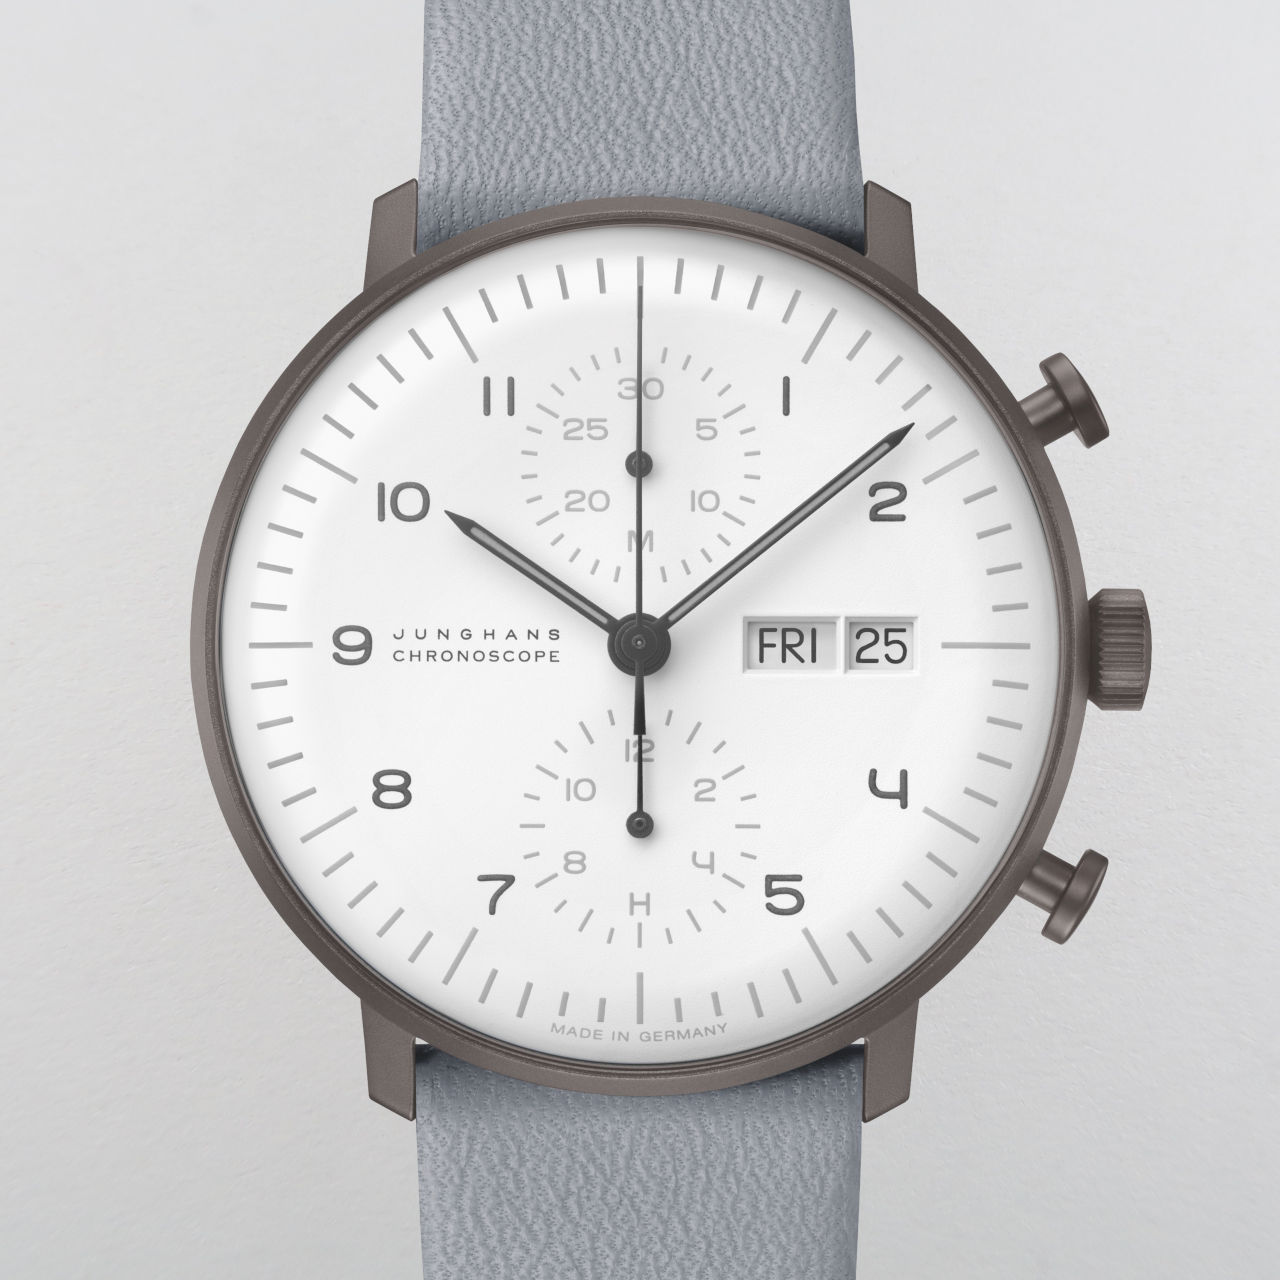 Junghans Max Bill Chronoscope Day-Date Ref. 027/400.805 PVD coated steel chronograph